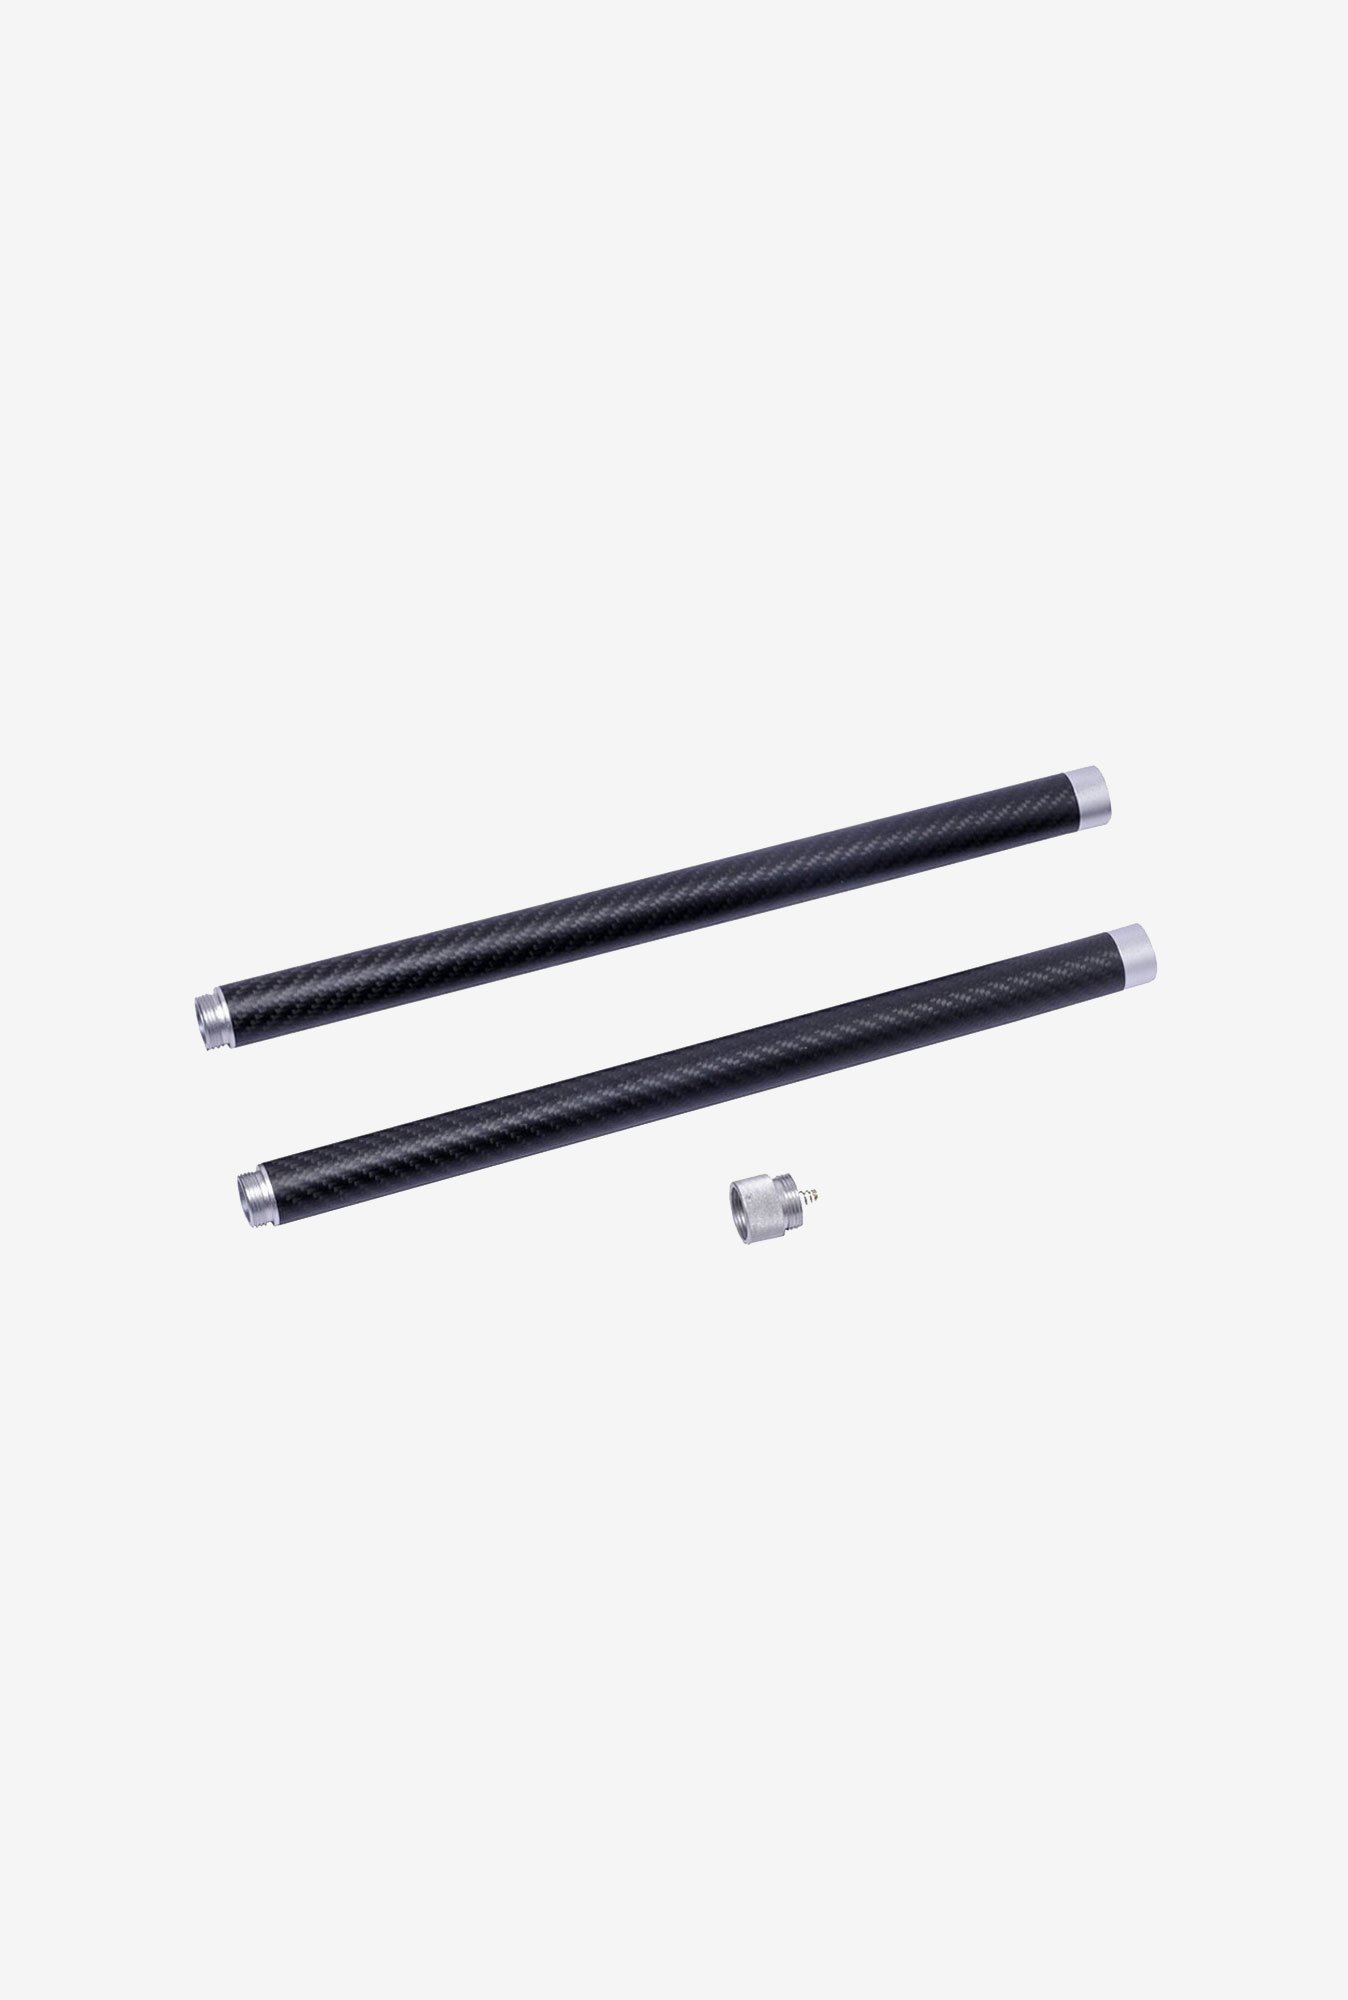 Neewer Feiyu Ultra Reach Carbon Fiber Extension Bar (Black)